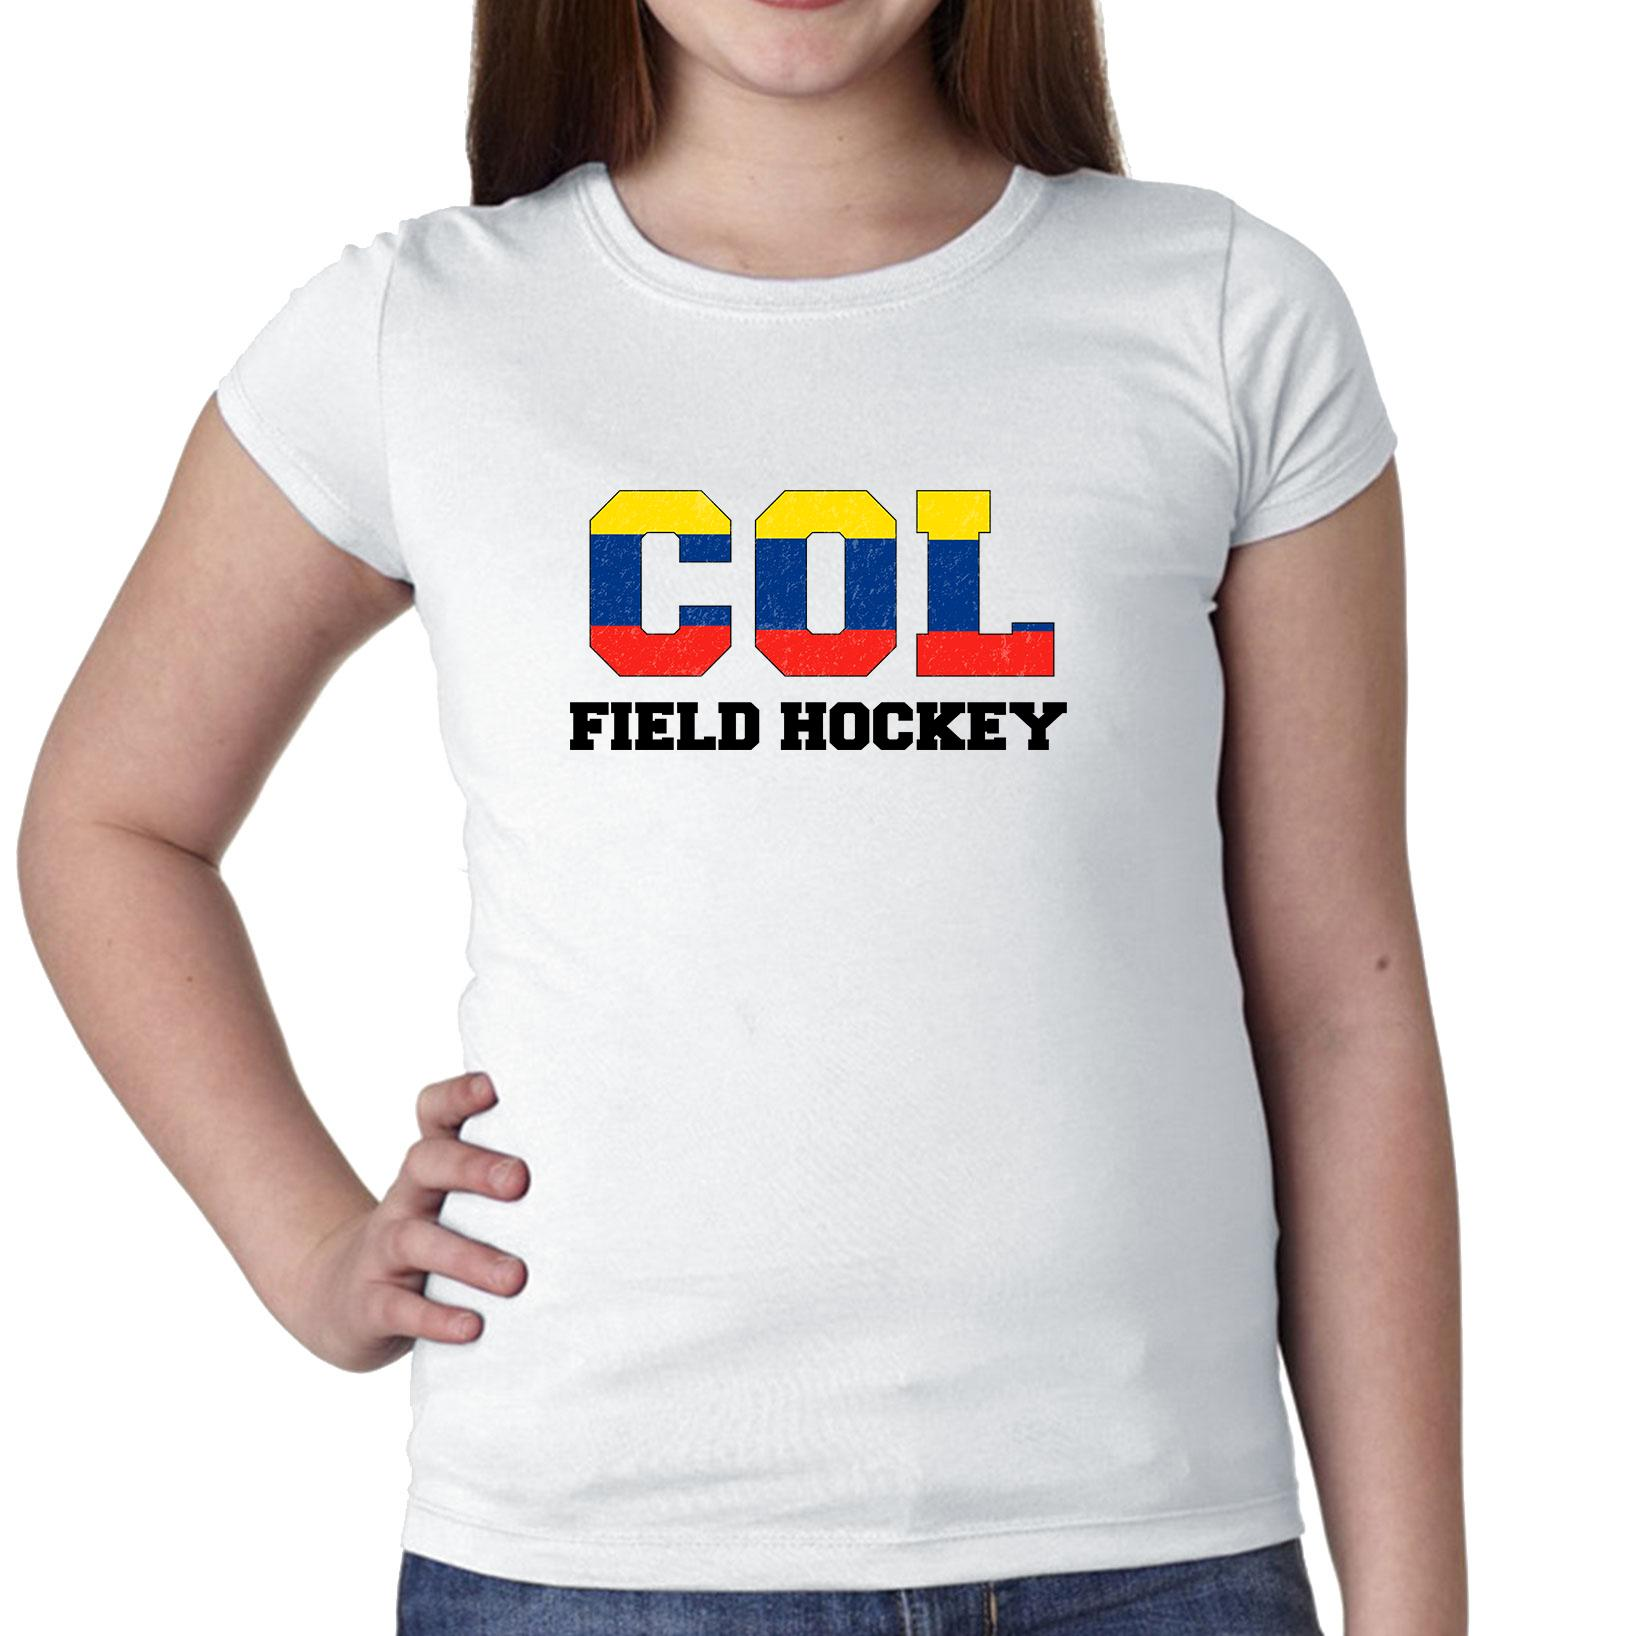 Colombia Field Hockey Olympic Games Rio Flag Girl's Cotton Youth T-Shirt by Hollywood Thread